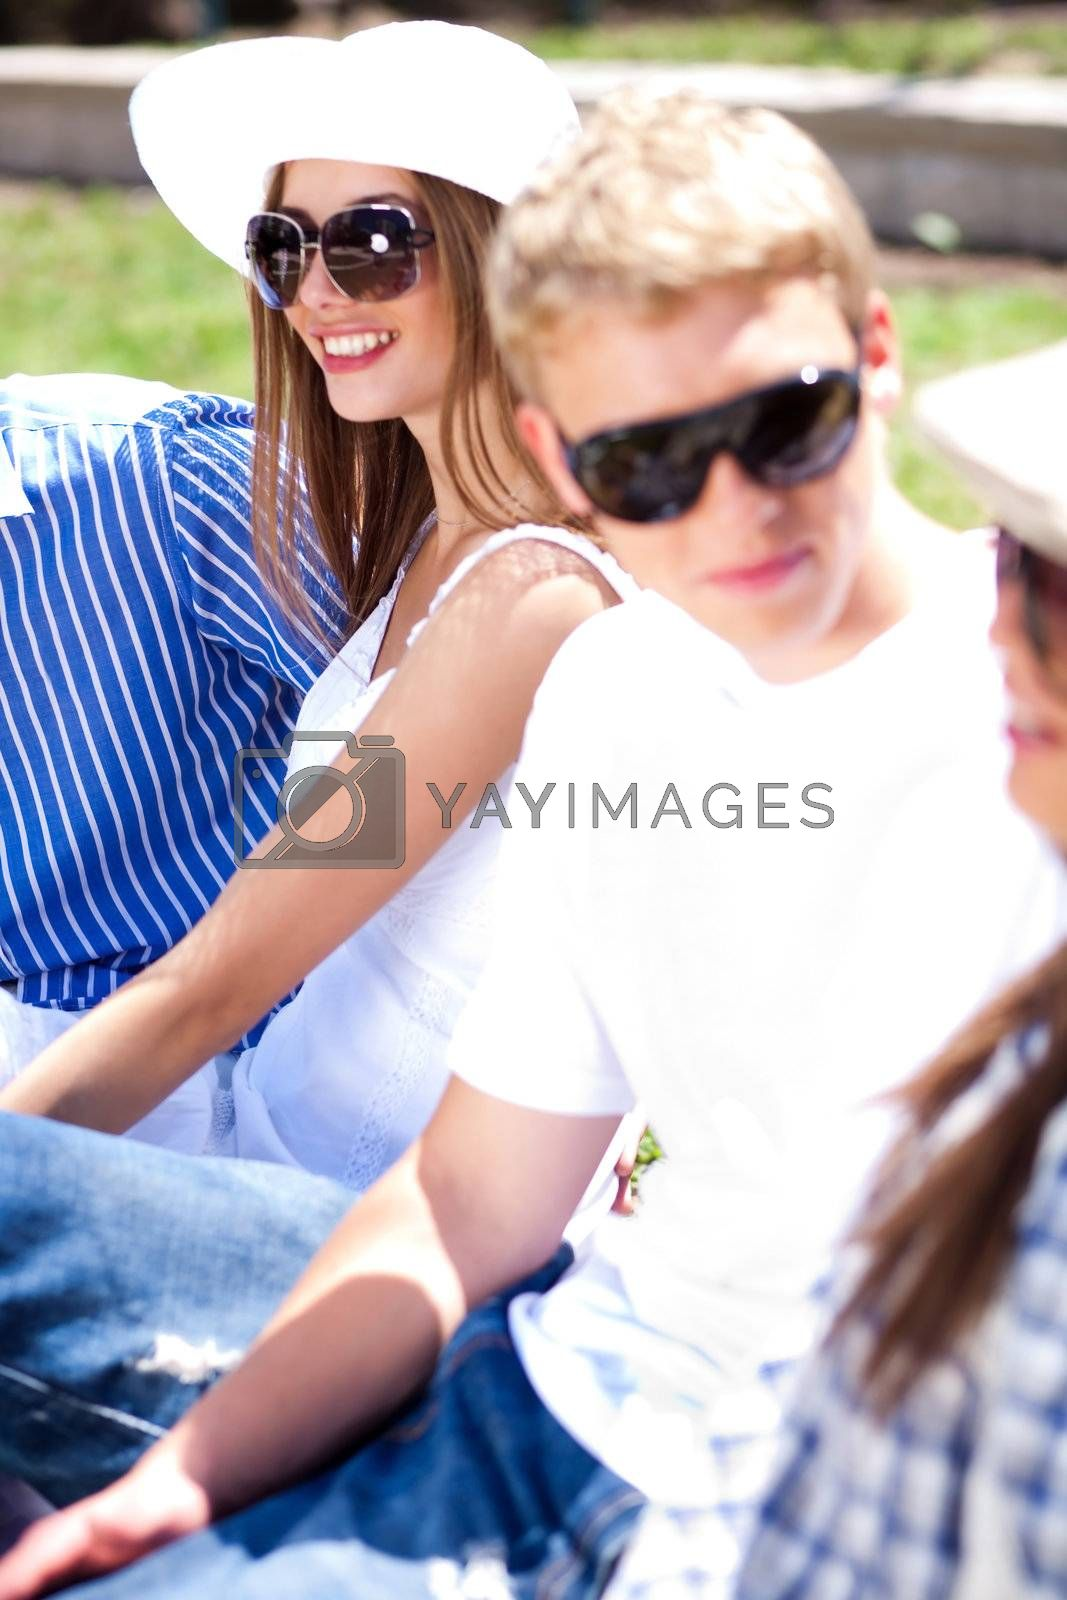 The goggles group, friends relaxing on sunny day and enjoying outdoors